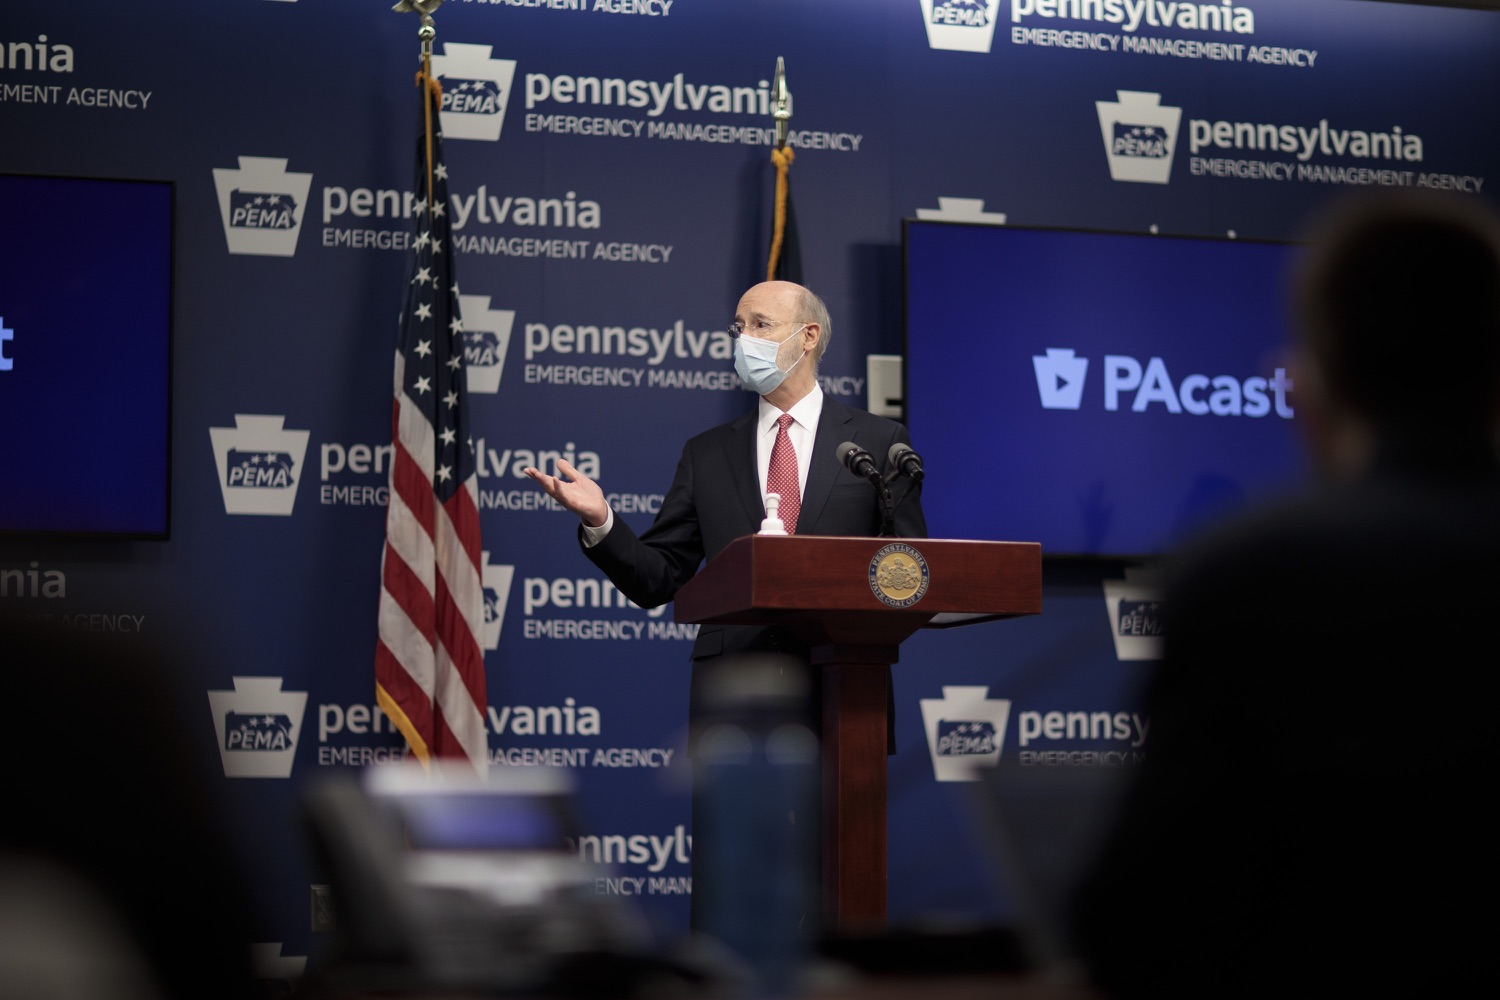 """<a href=""""https://filesource.wostreaming.net/commonwealthofpa/photo/18465_gov_electoralCollege_dz_05.jpg"""" target=""""_blank"""">⇣Download Photo<br></a>Pennsylvania Governor Tom Wolf speaking at the press conference.  With Congress preparing to count Electoral College votes today, Governor Tom Wolf was joined by Secretary of State Kathy Boockvar and Philadelphia City Commissioner Al Schmidt to emphasize that Pennsylvania had a free, fair and secure election. All efforts by Congressional Republicans to overthrow the election results and subvert the will of the voters are disgraceful and must be rejected. Harrisburg, PA  January 6, 2021"""